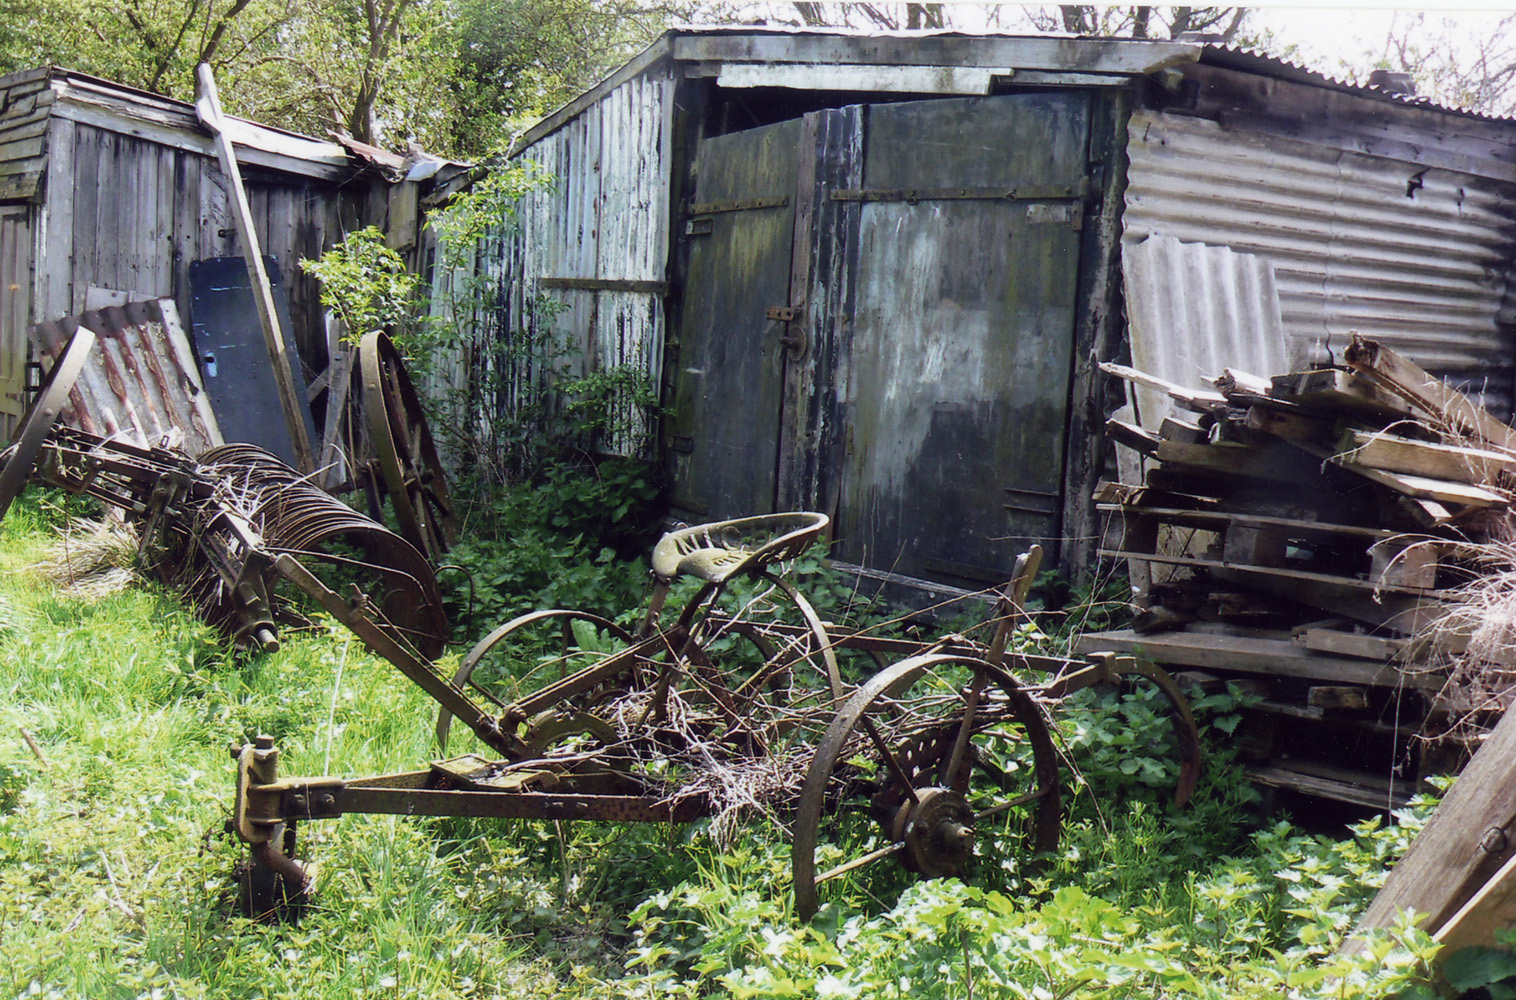 Abandoned farm machinery by the sheds at the Lock House